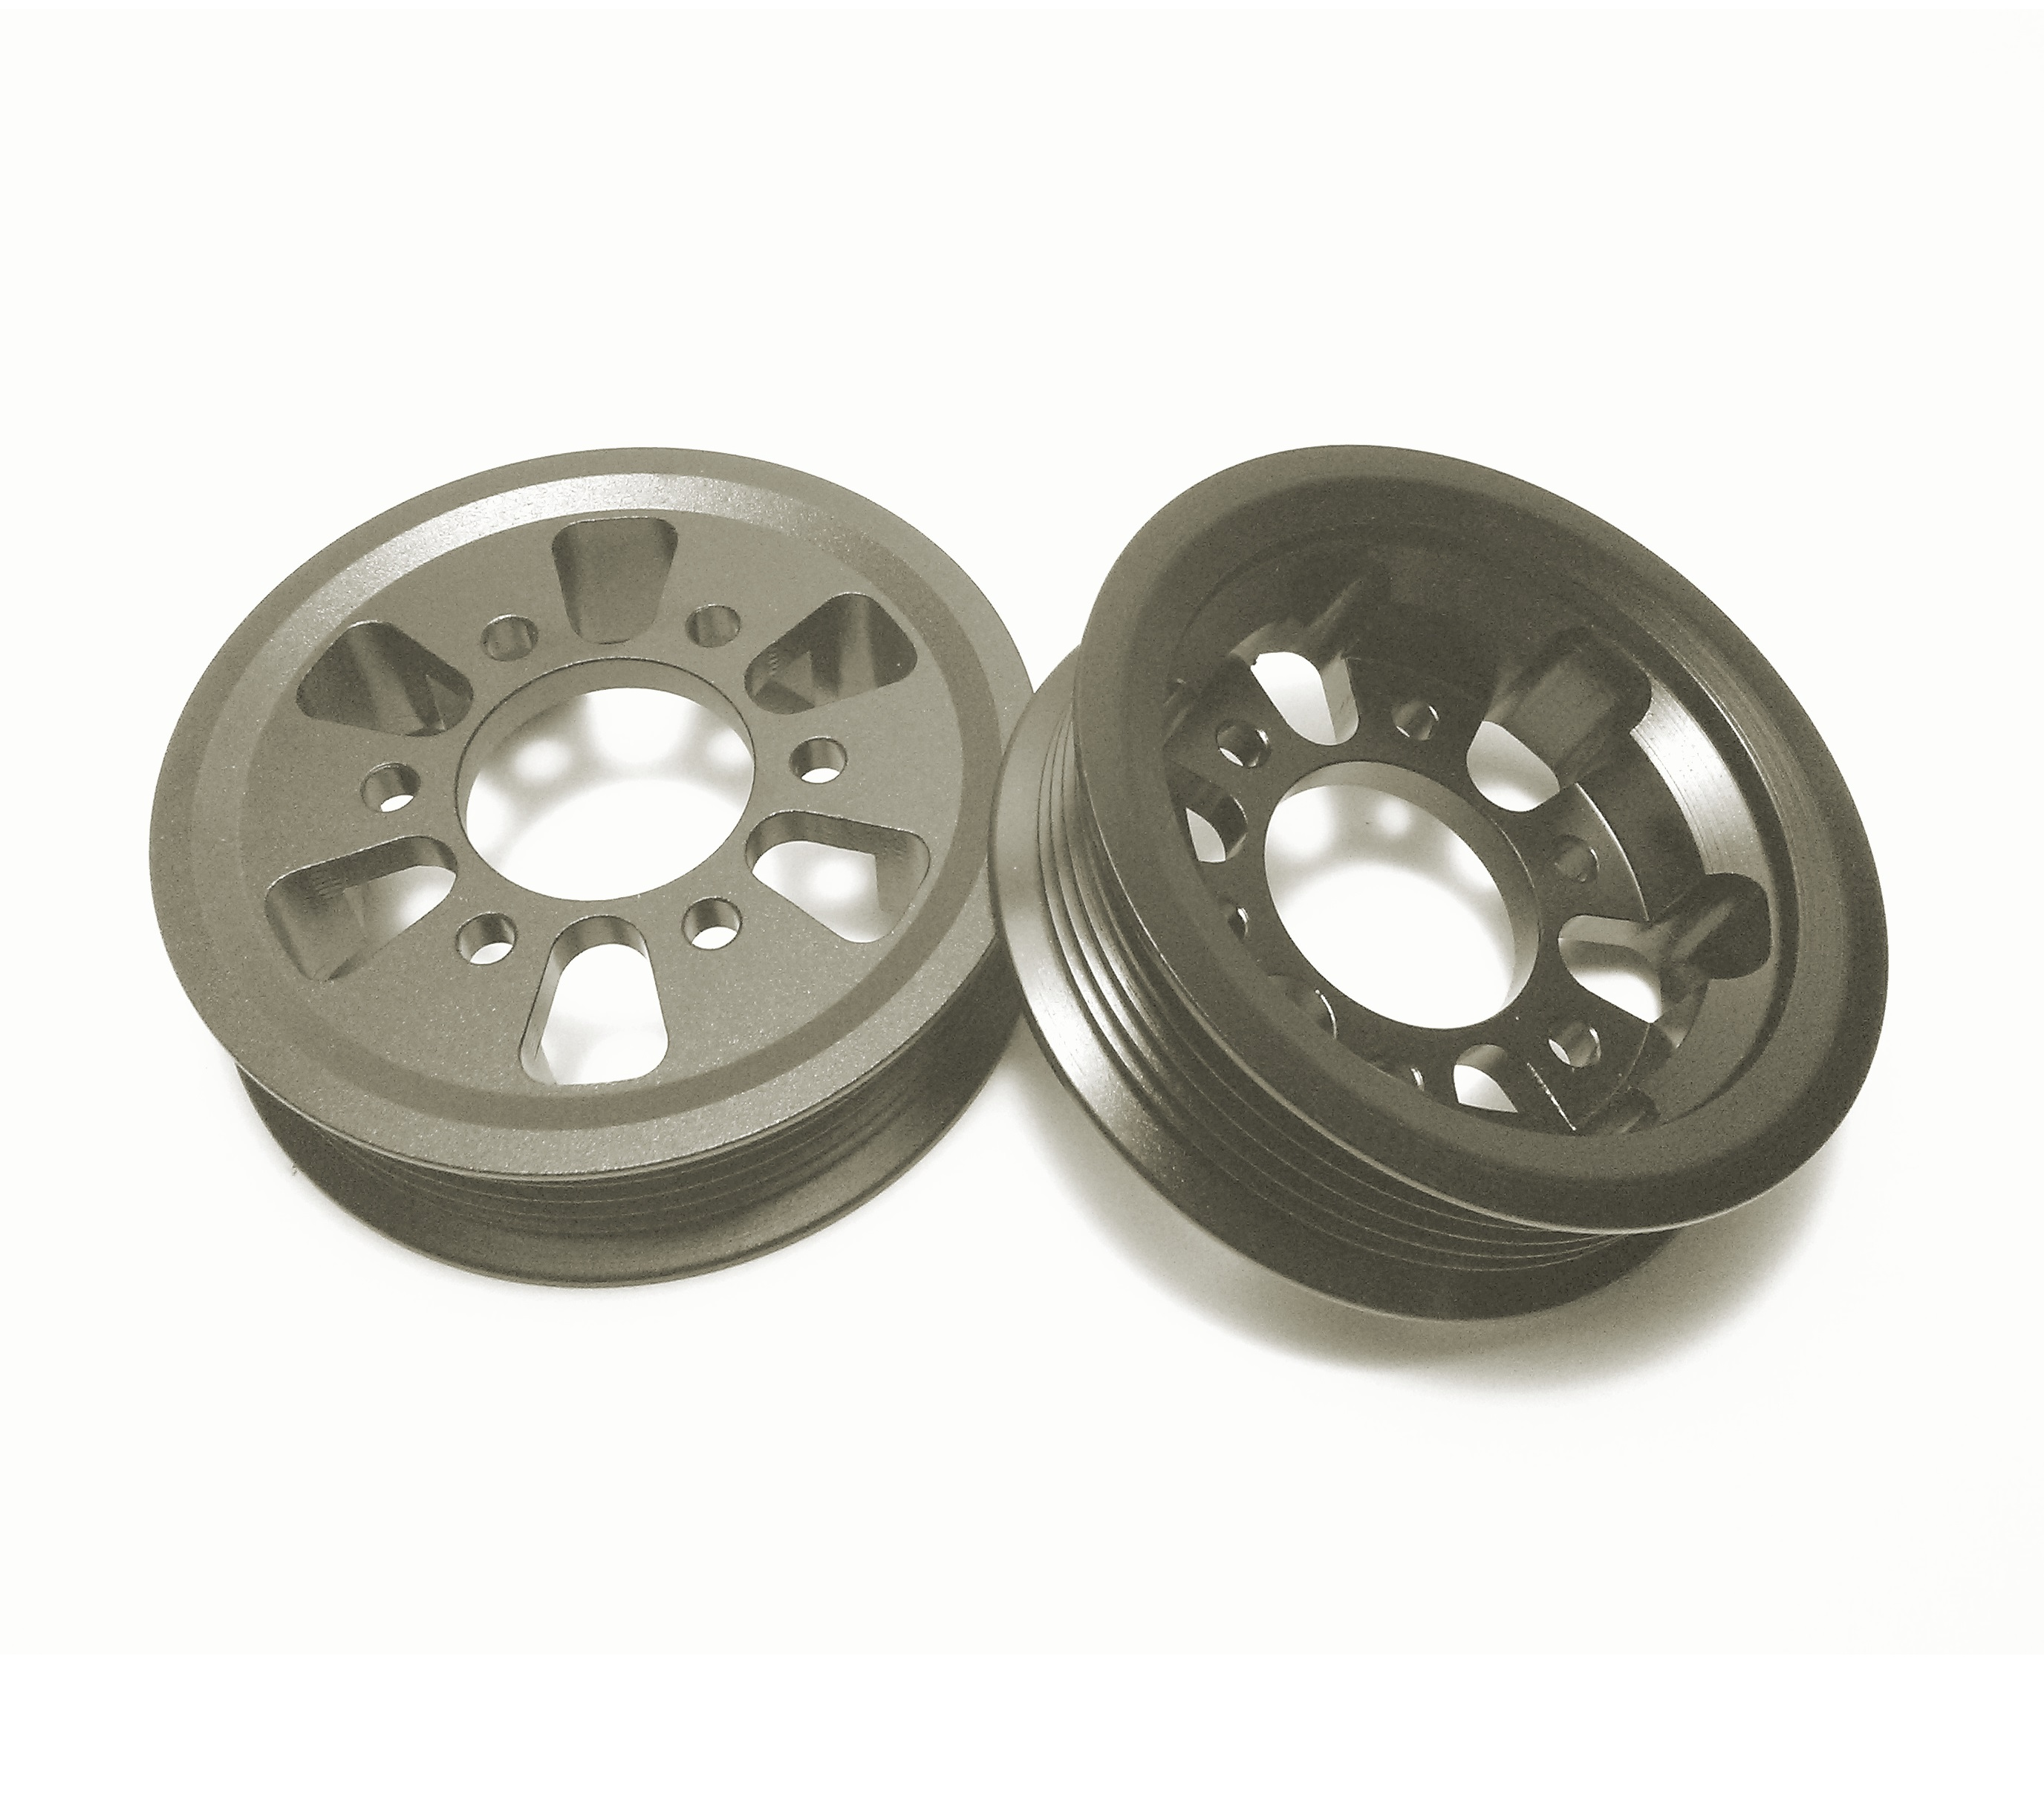 Aluminum Supercharger Pulley: M90 Quick Pulley Kit (3.5psi & 3.0psi Pulleys)